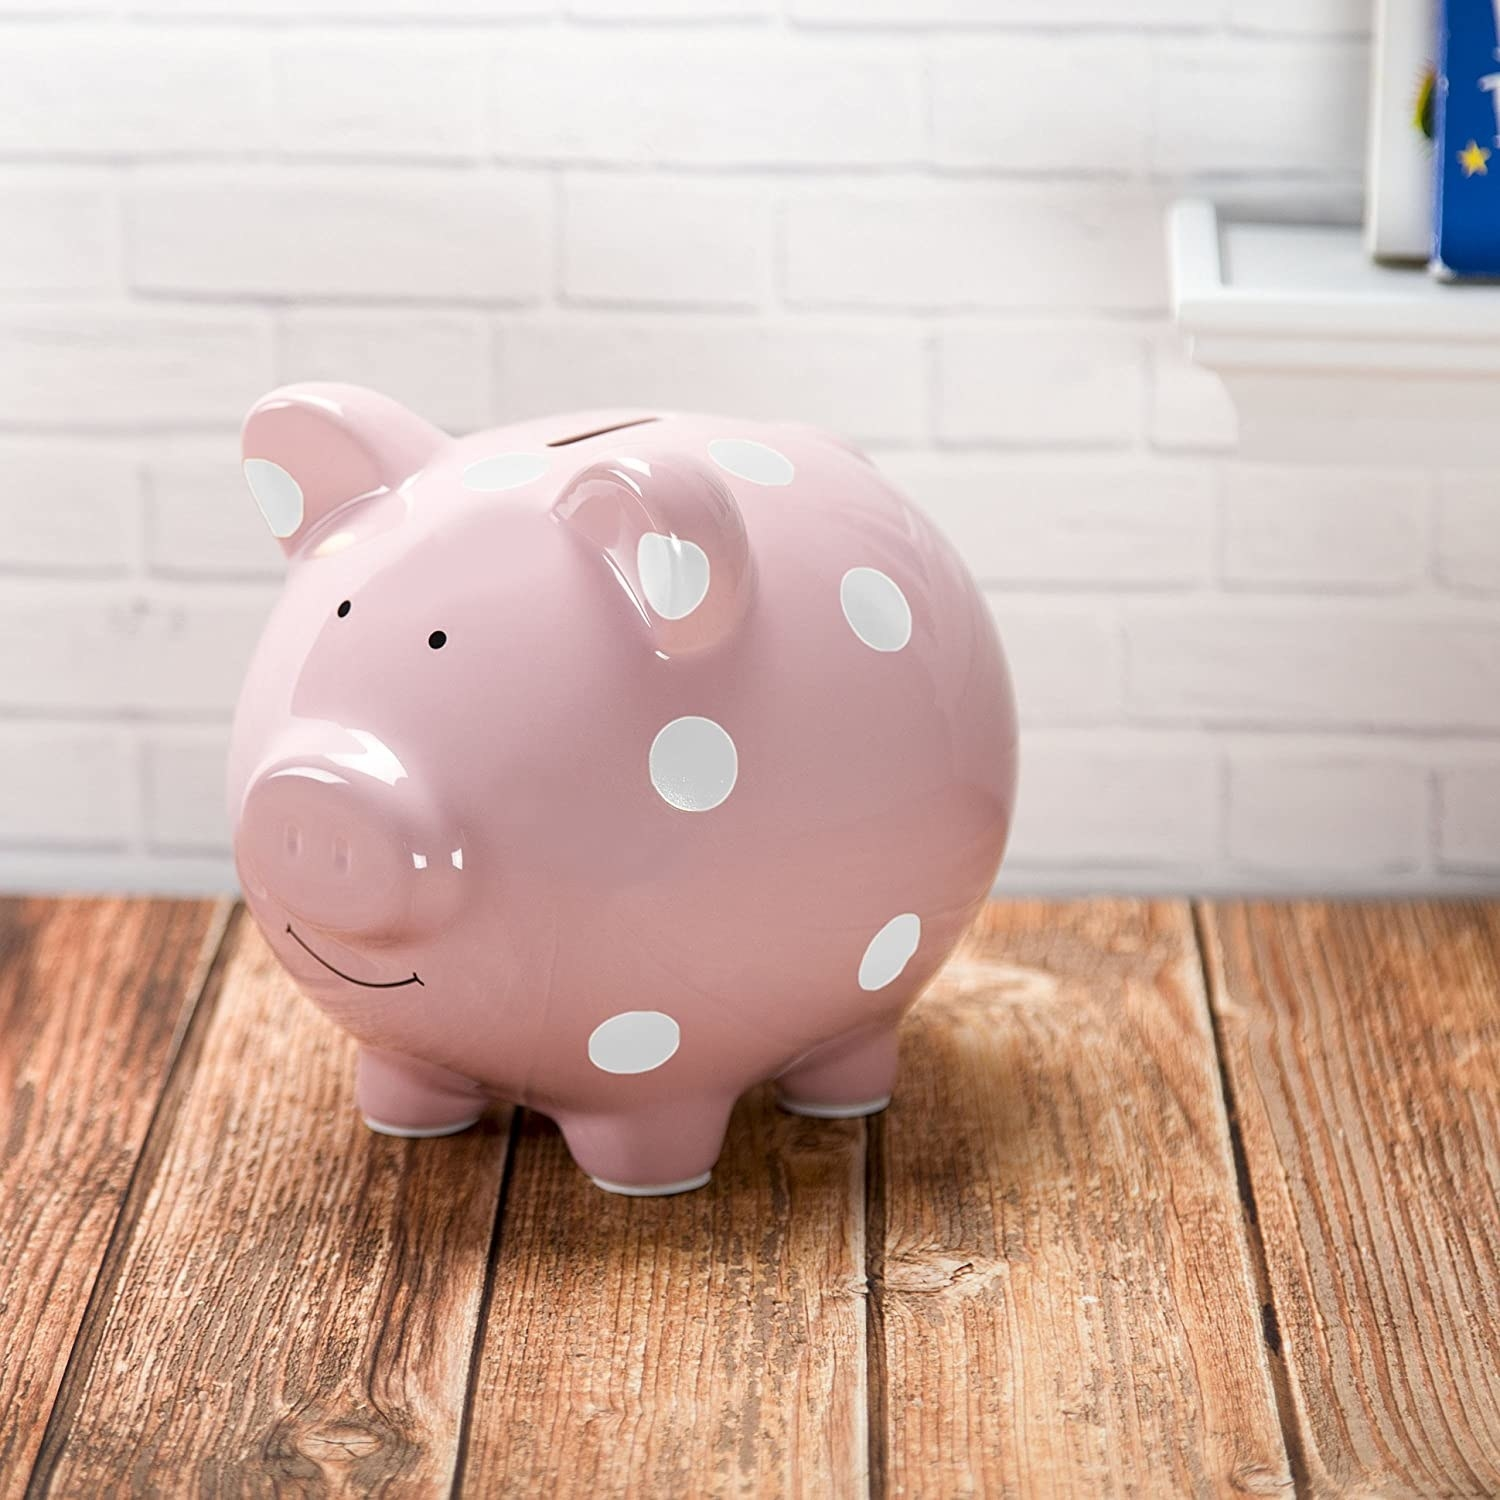 The pink piggy bank with a slot on top for adding money